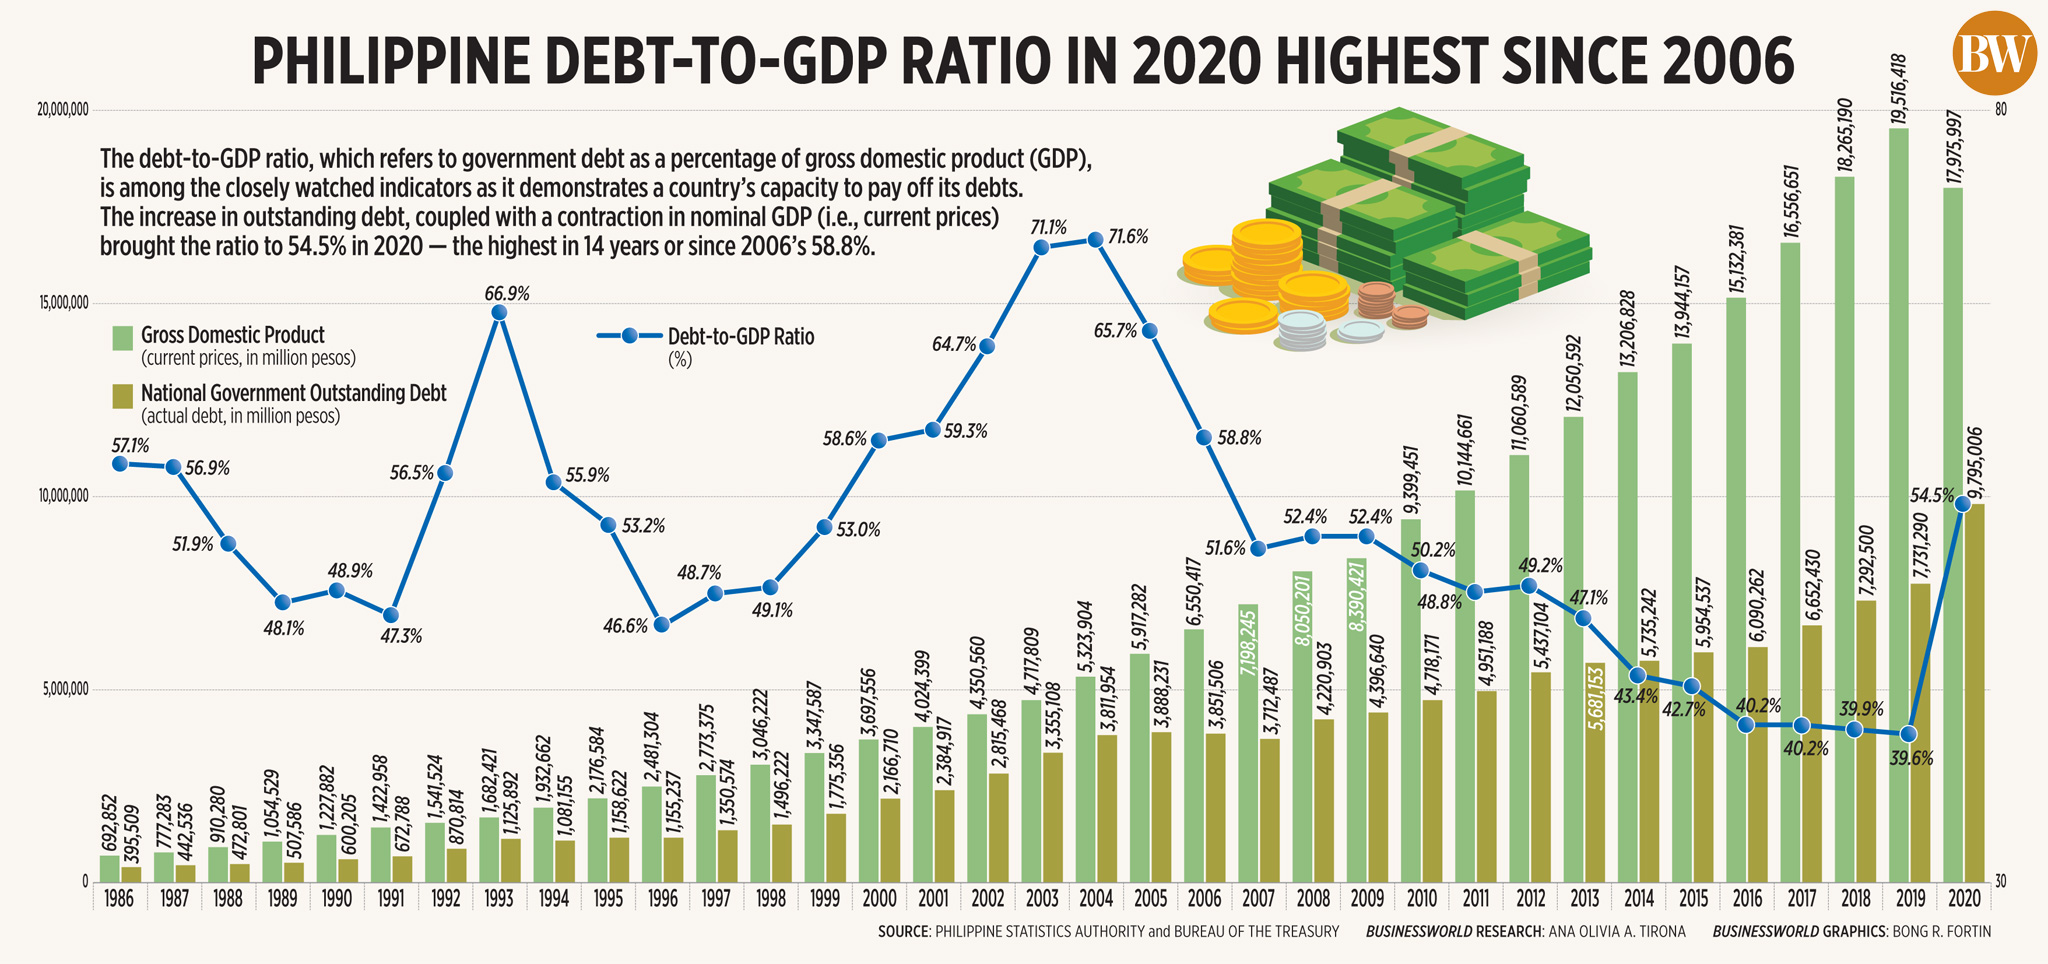 Philippine debt-to-GDP ratio in 2020 highest since 2006